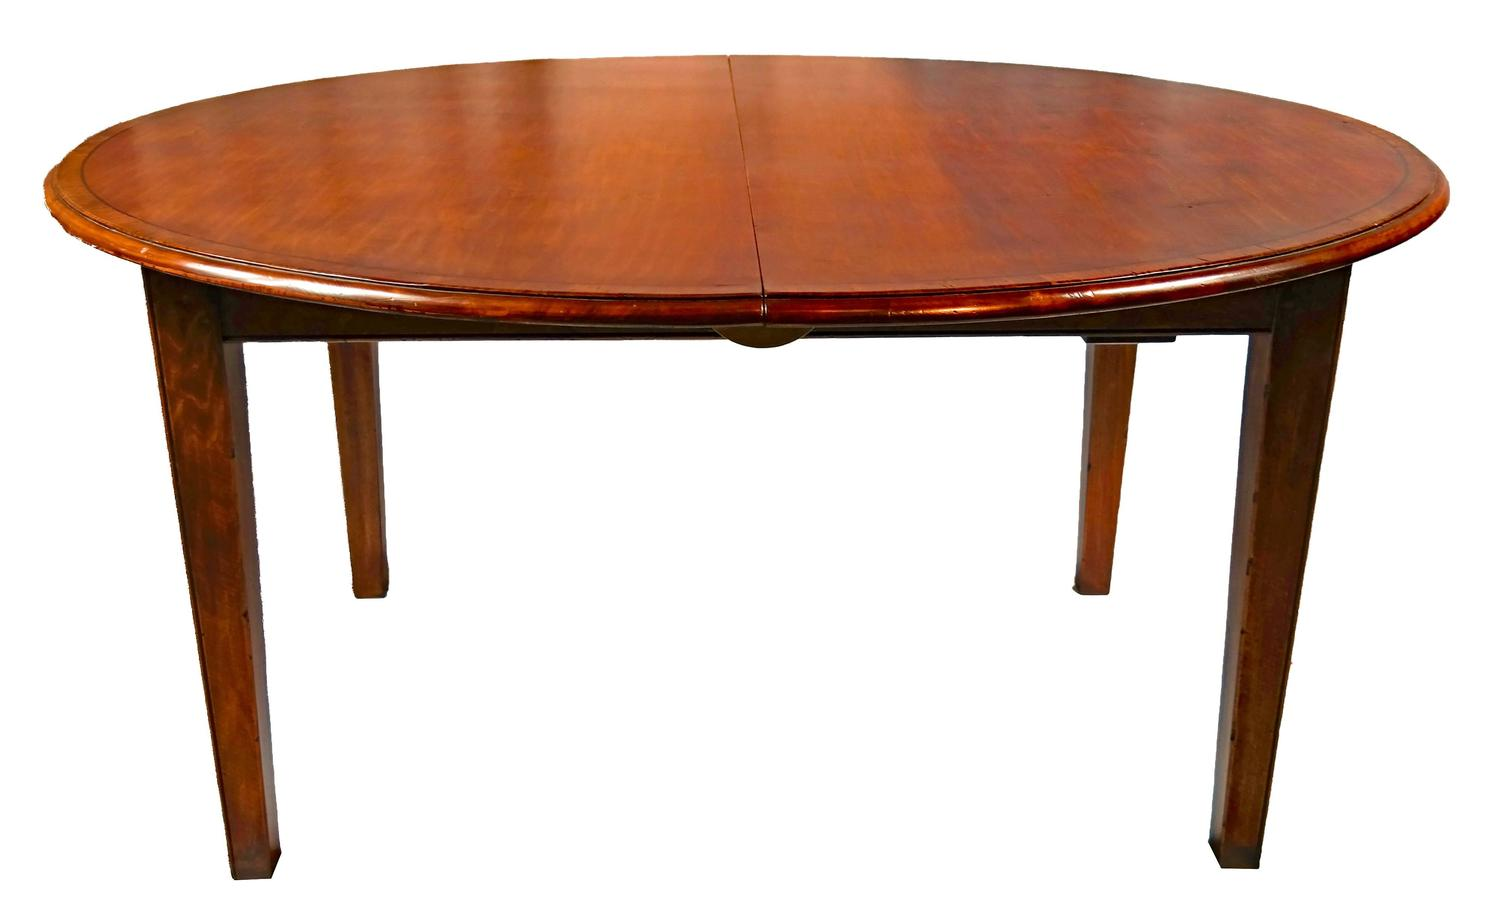 Round cherry yewwood banded dining table for sale at 1stdibs for Cherry dining table